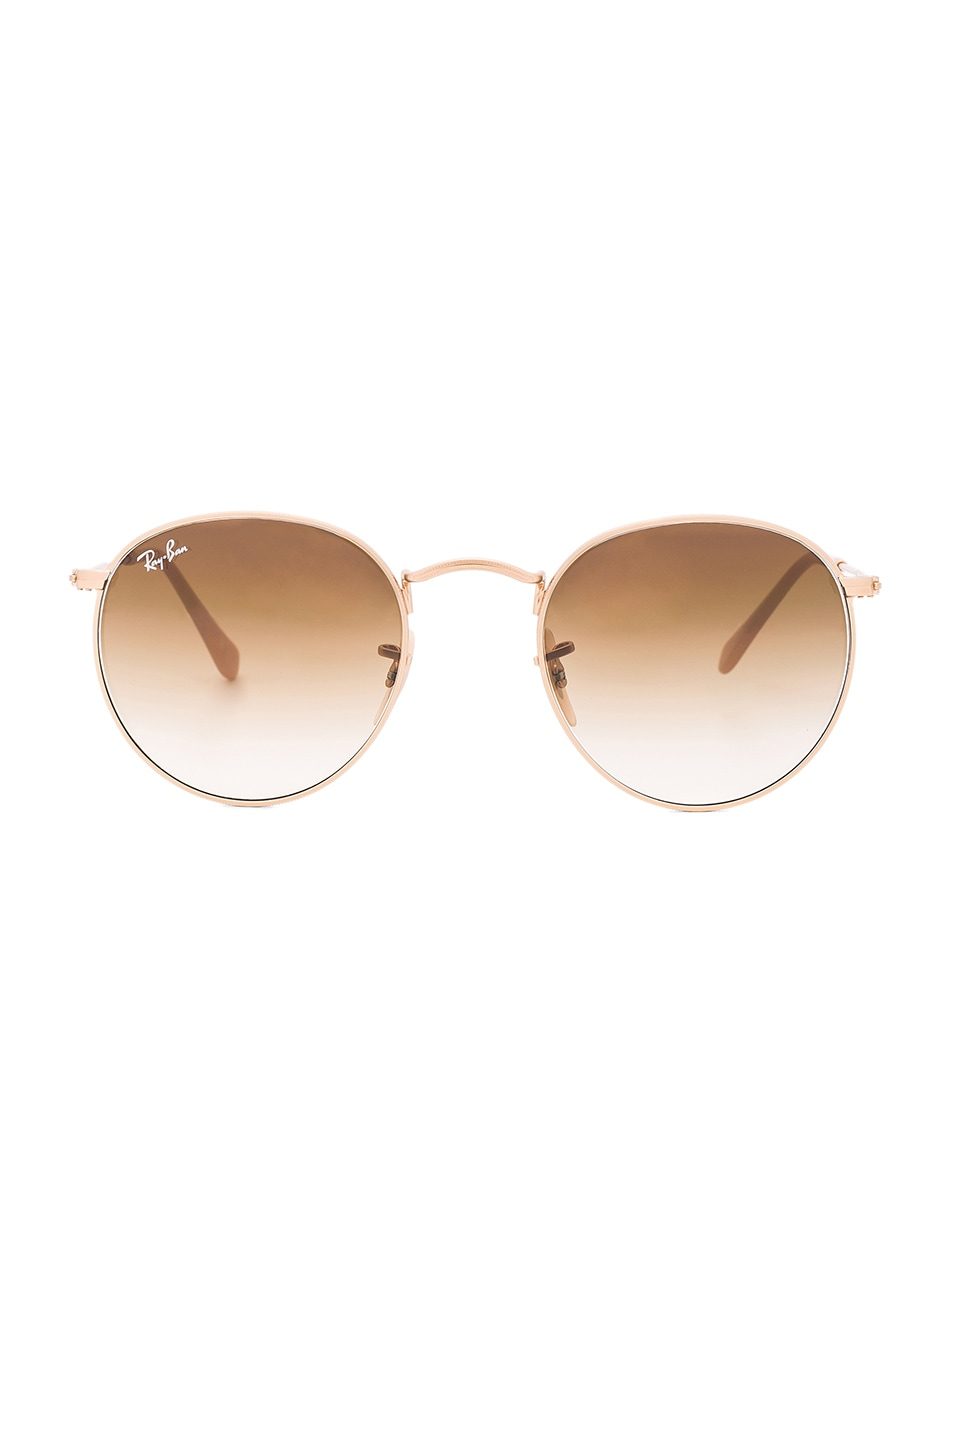 d19d98b09c Image 1 of Ray-Ban Round Sunglasses in Gold   Gradient Brown